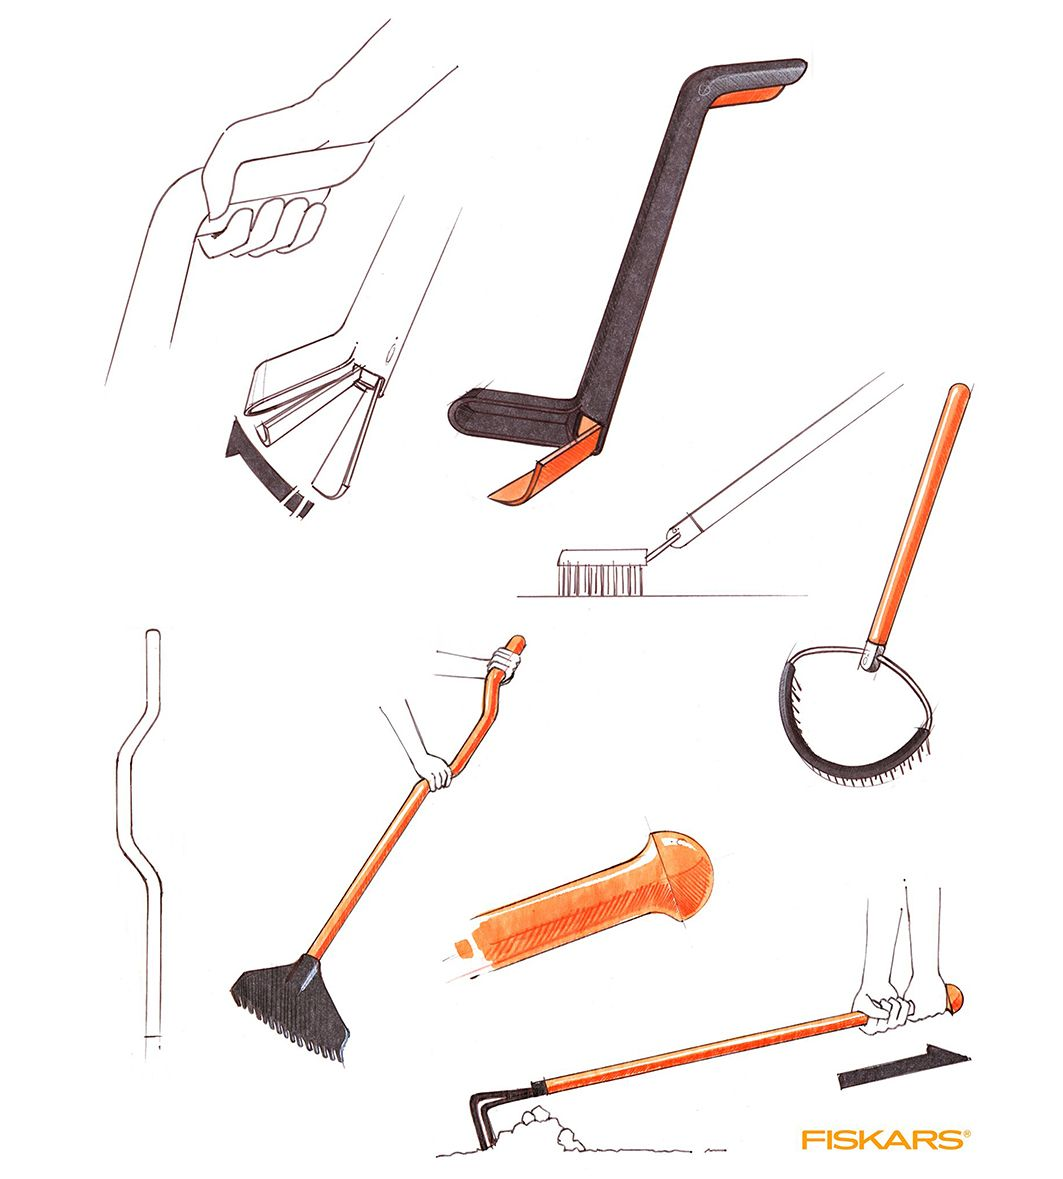 Ideation Sketches For Garden Tools. Check Out The Pooper Scooper In The  Upper Left Corner! James Owen Design + Fiskars #design #industrialdesign  #visual ...